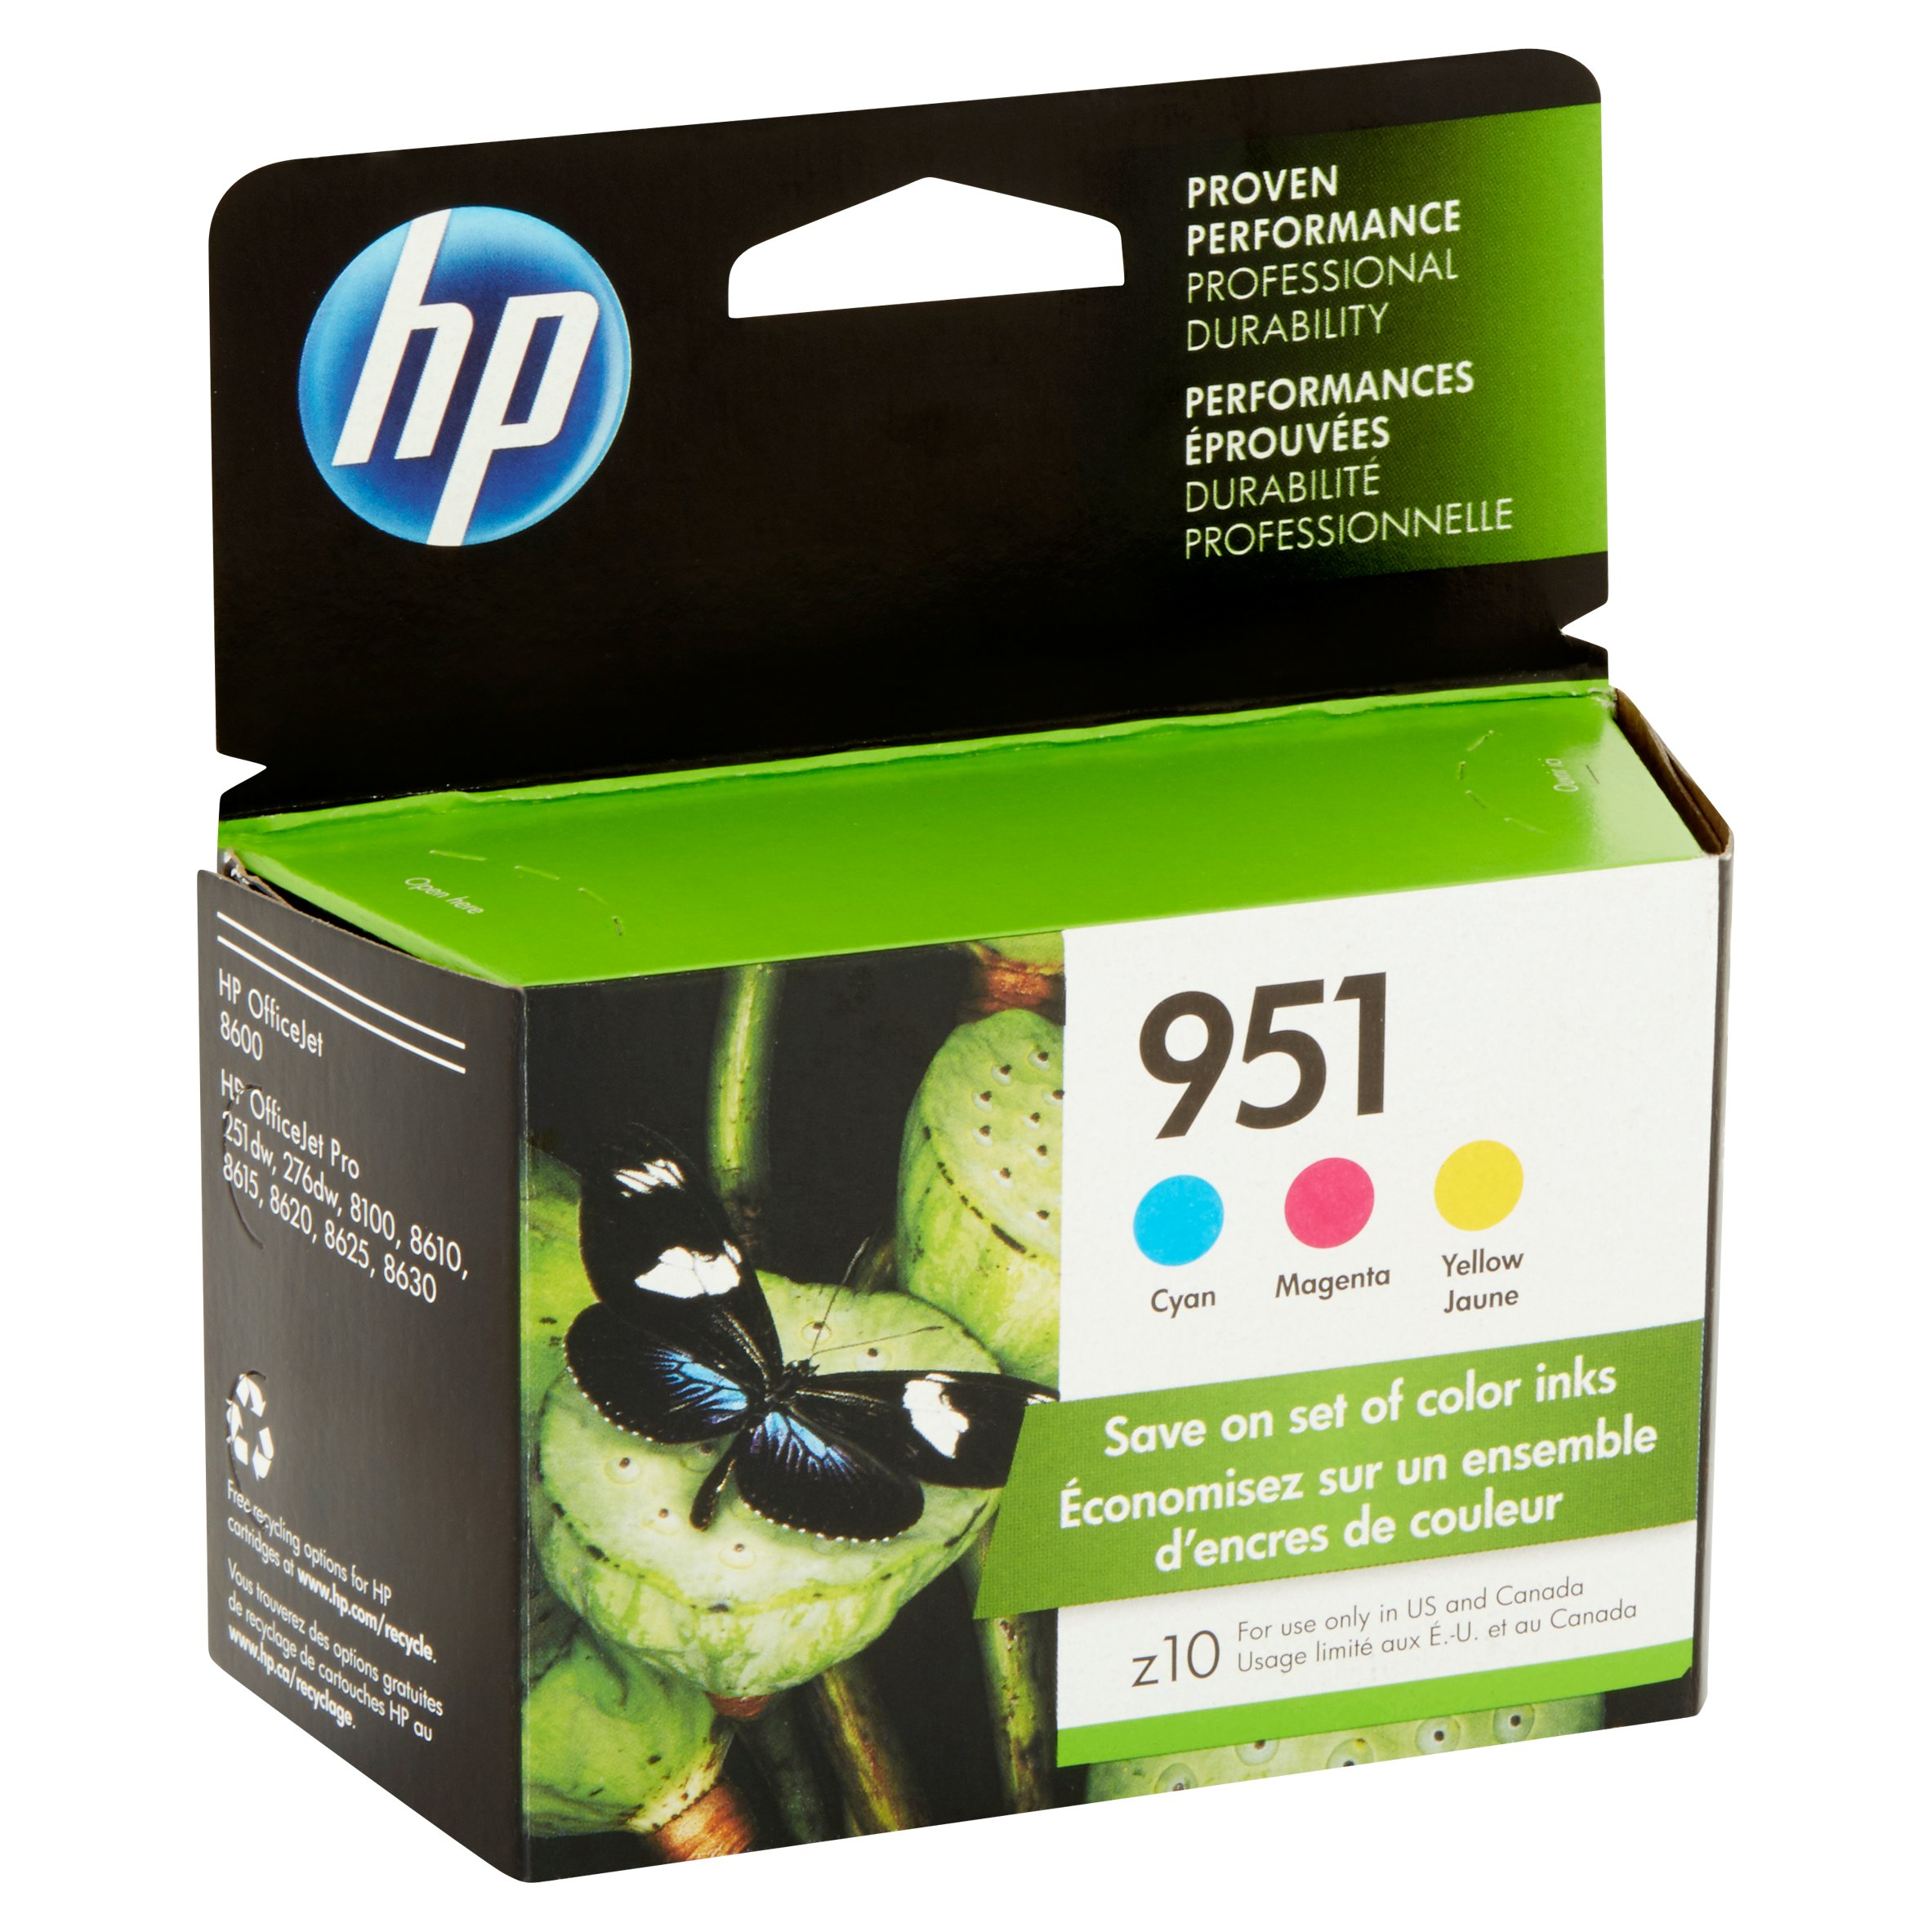 HP 951 Cyan, Magenta & Yellow ink cartridges, 3-pack (CR314FN) by HP